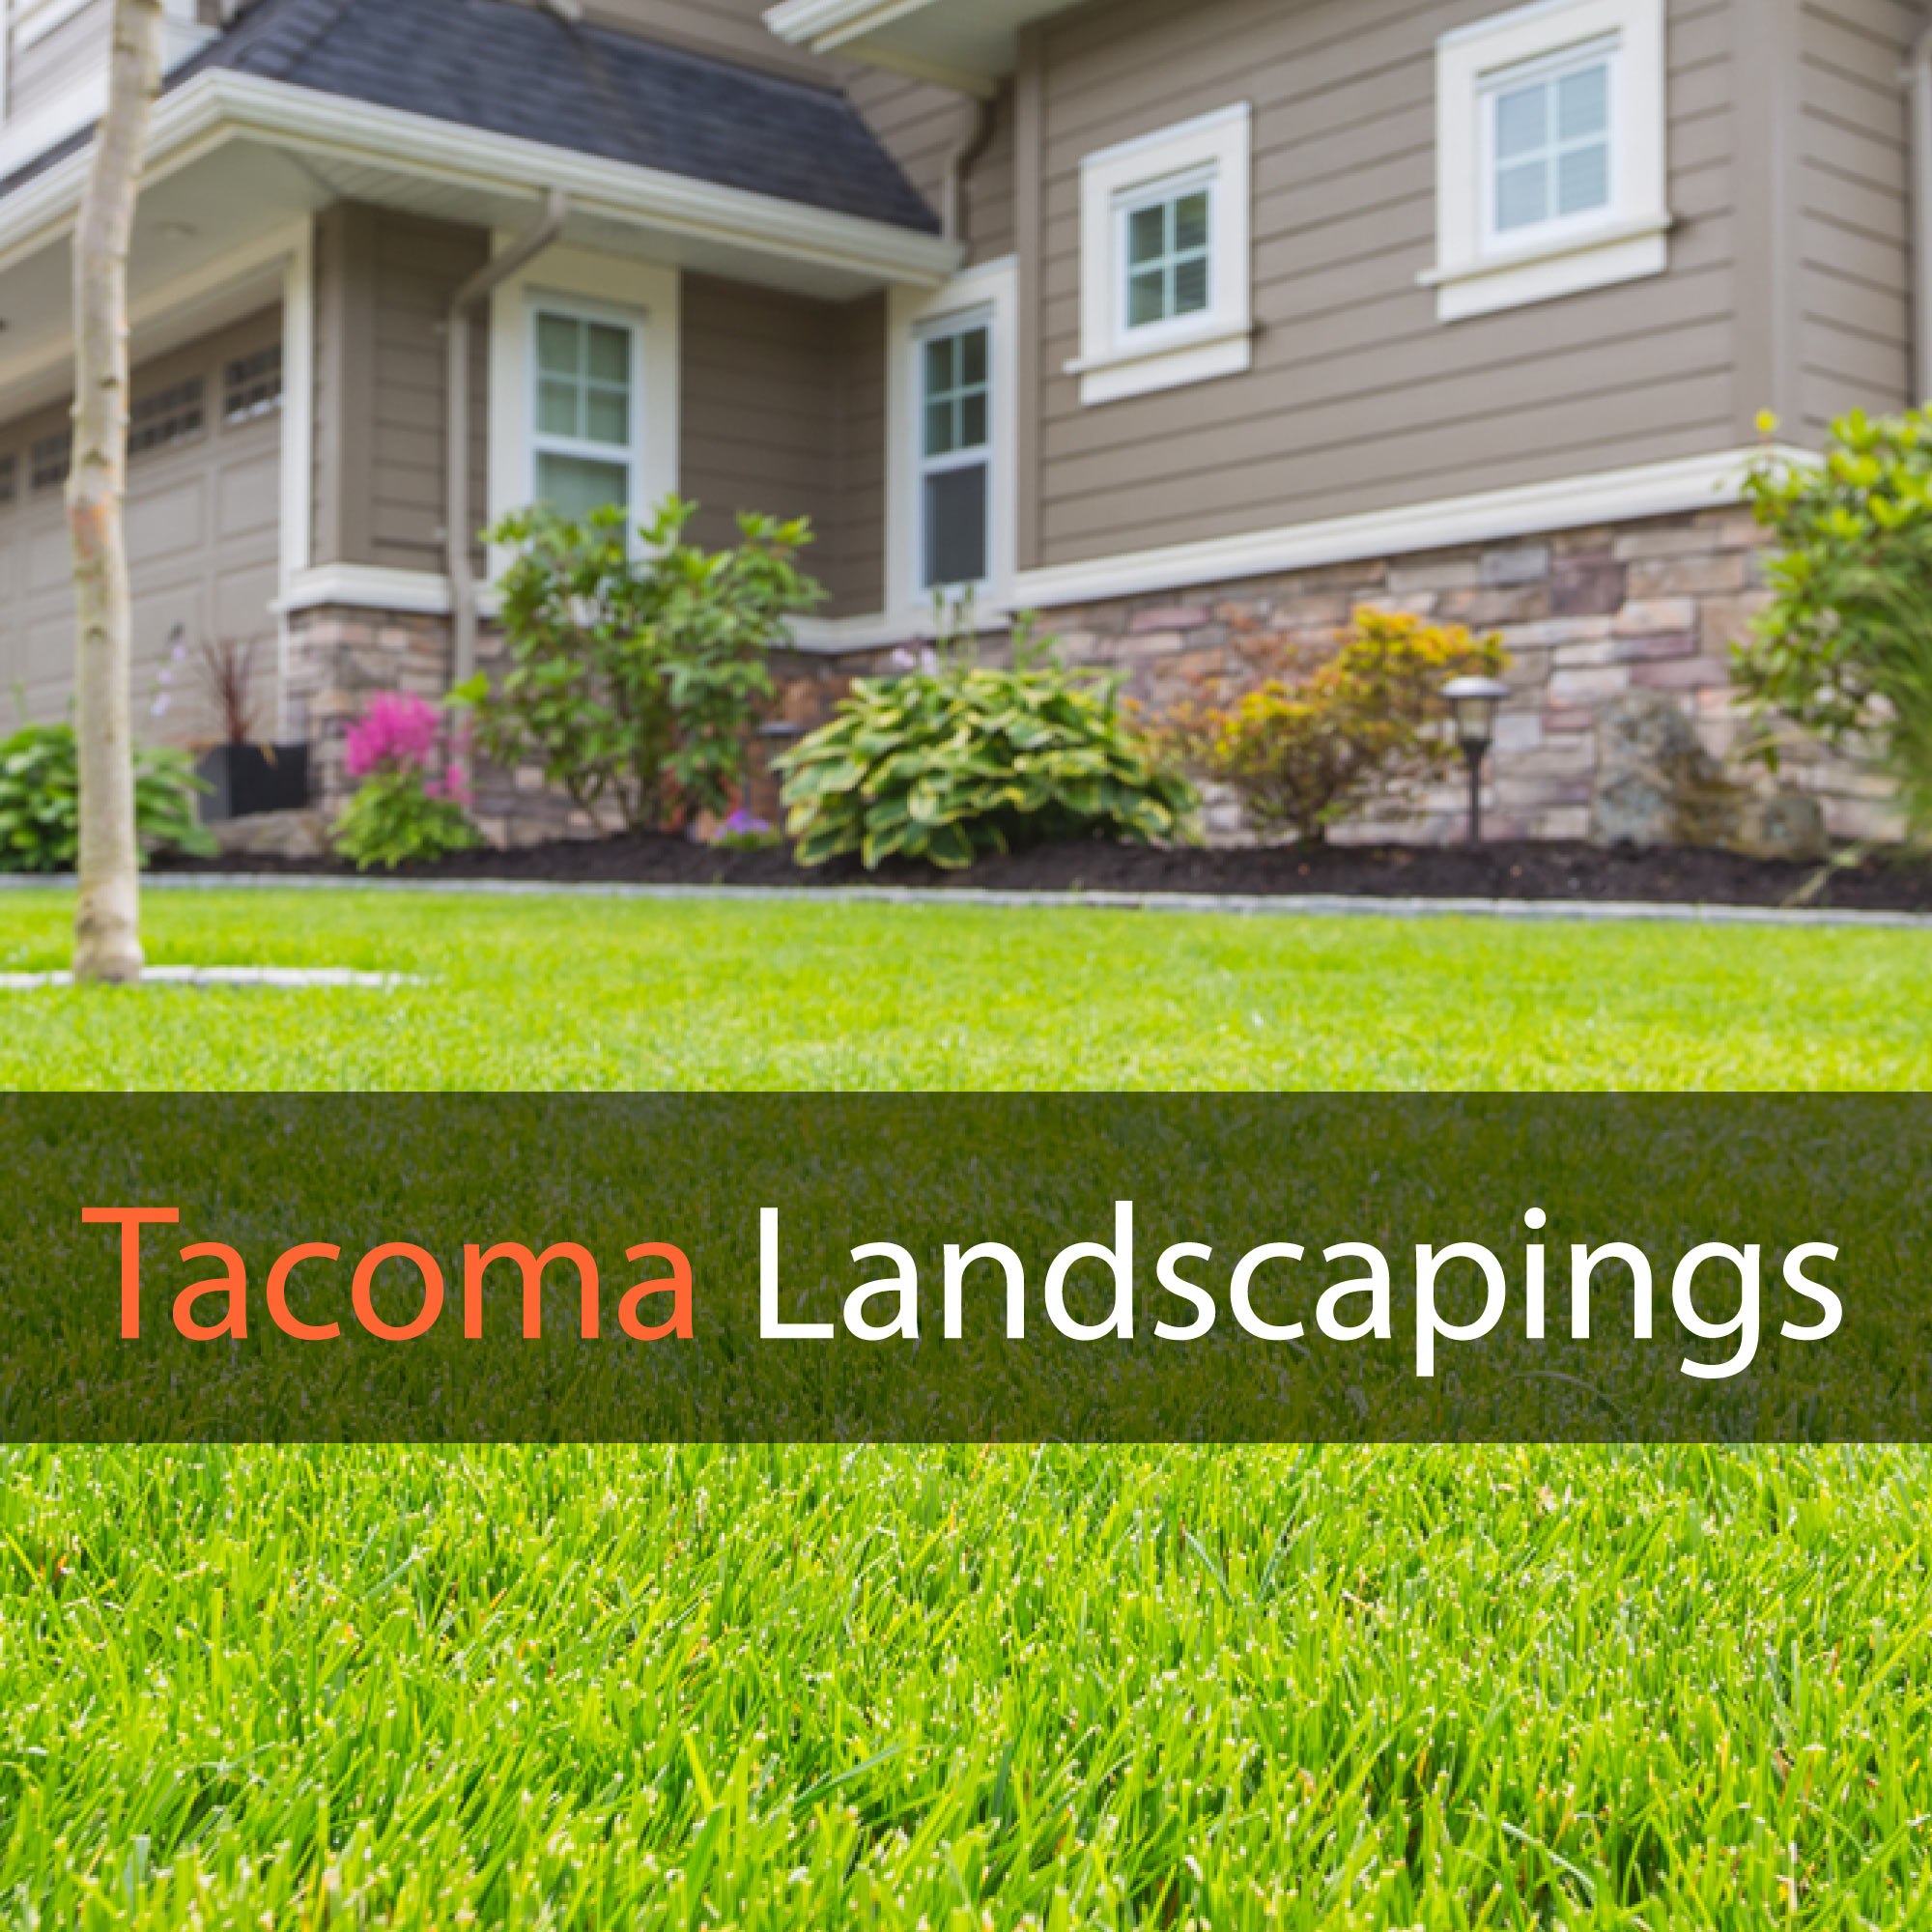 Tacoma-Landscapings-FB-Profile.jpg